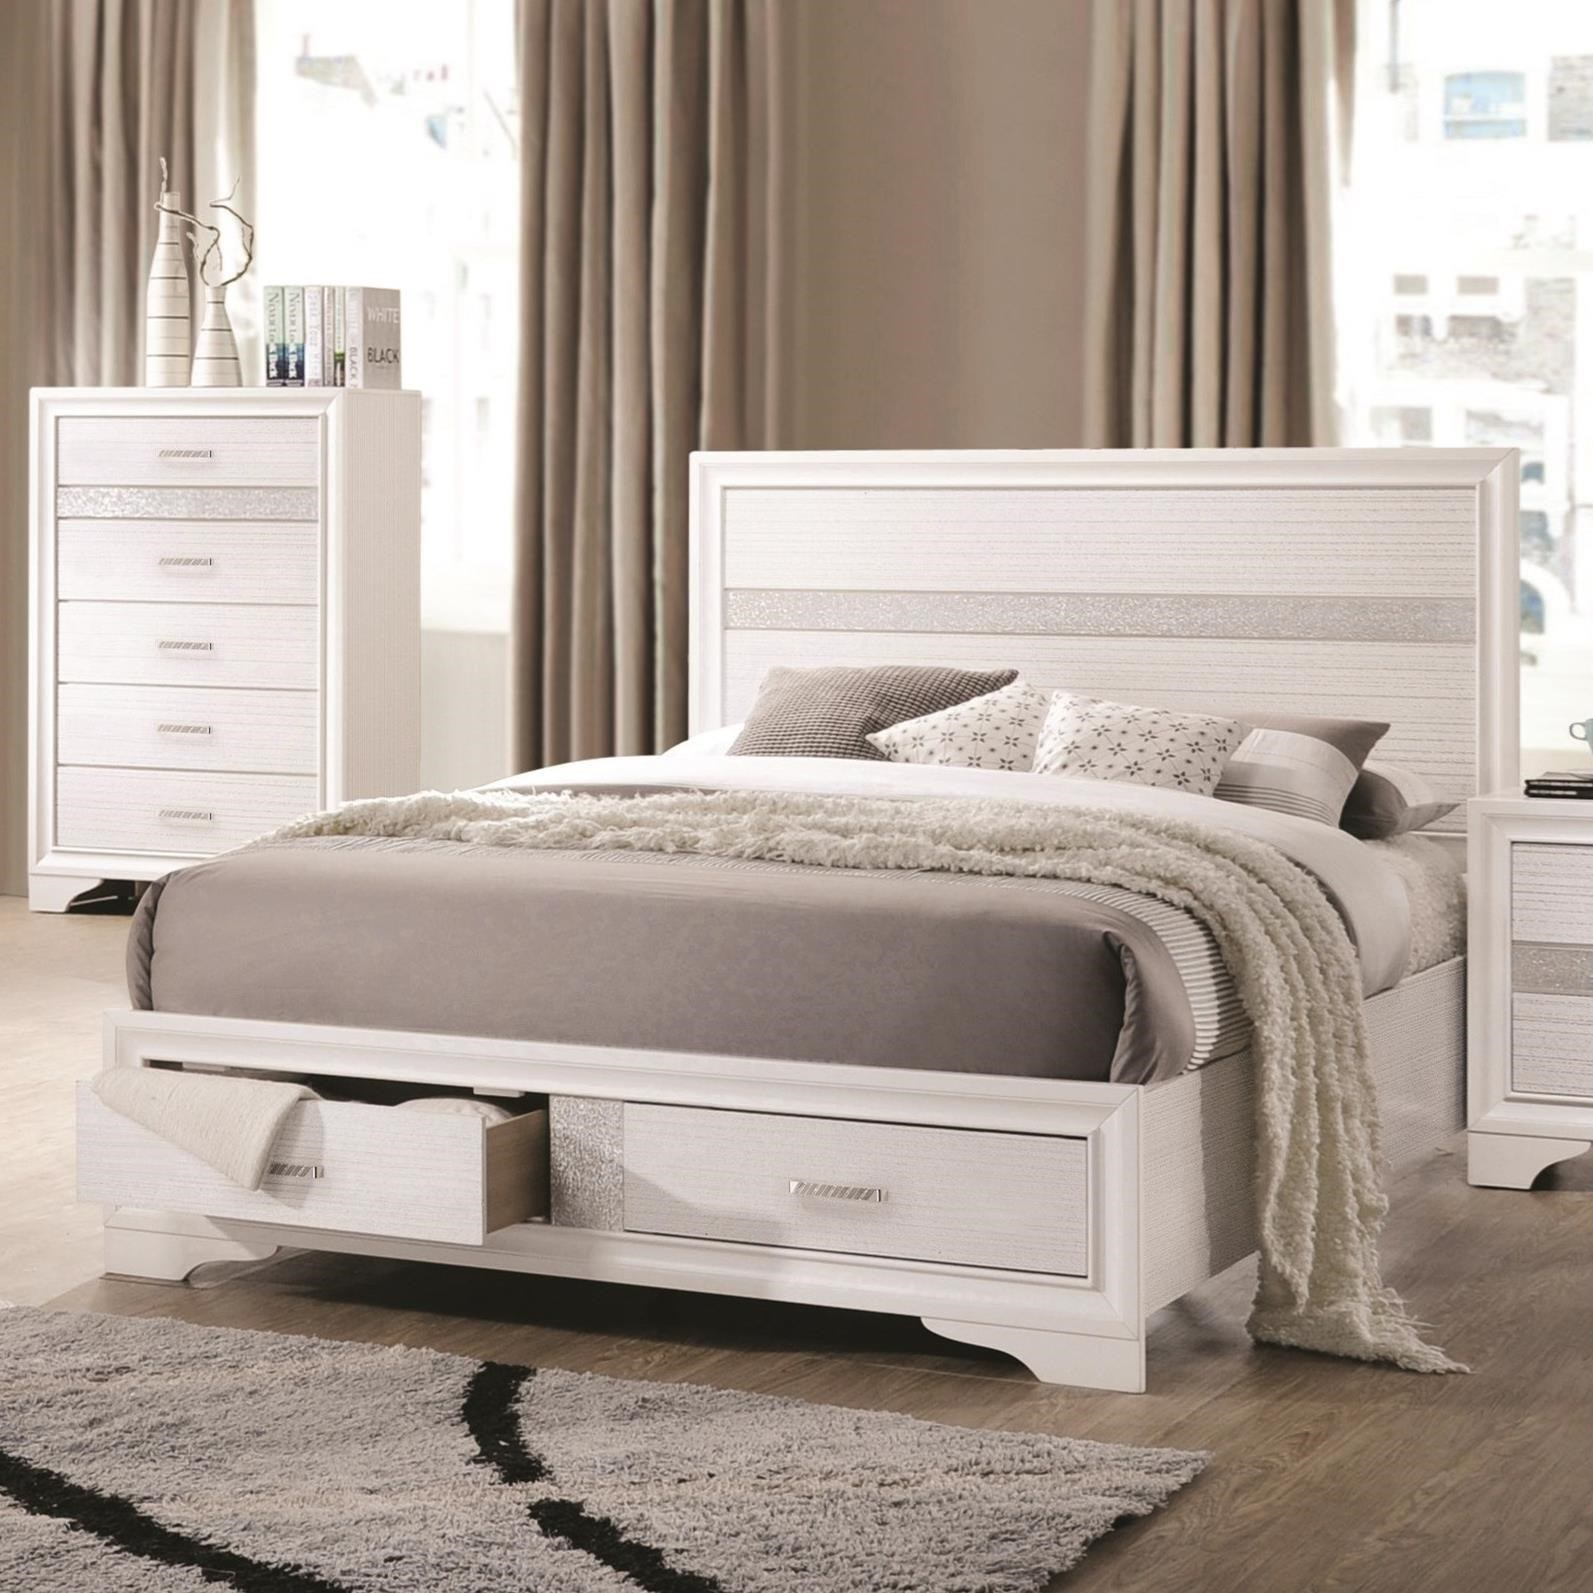 upholstered coaster headboard storage bed city queen info with slowak king beds value